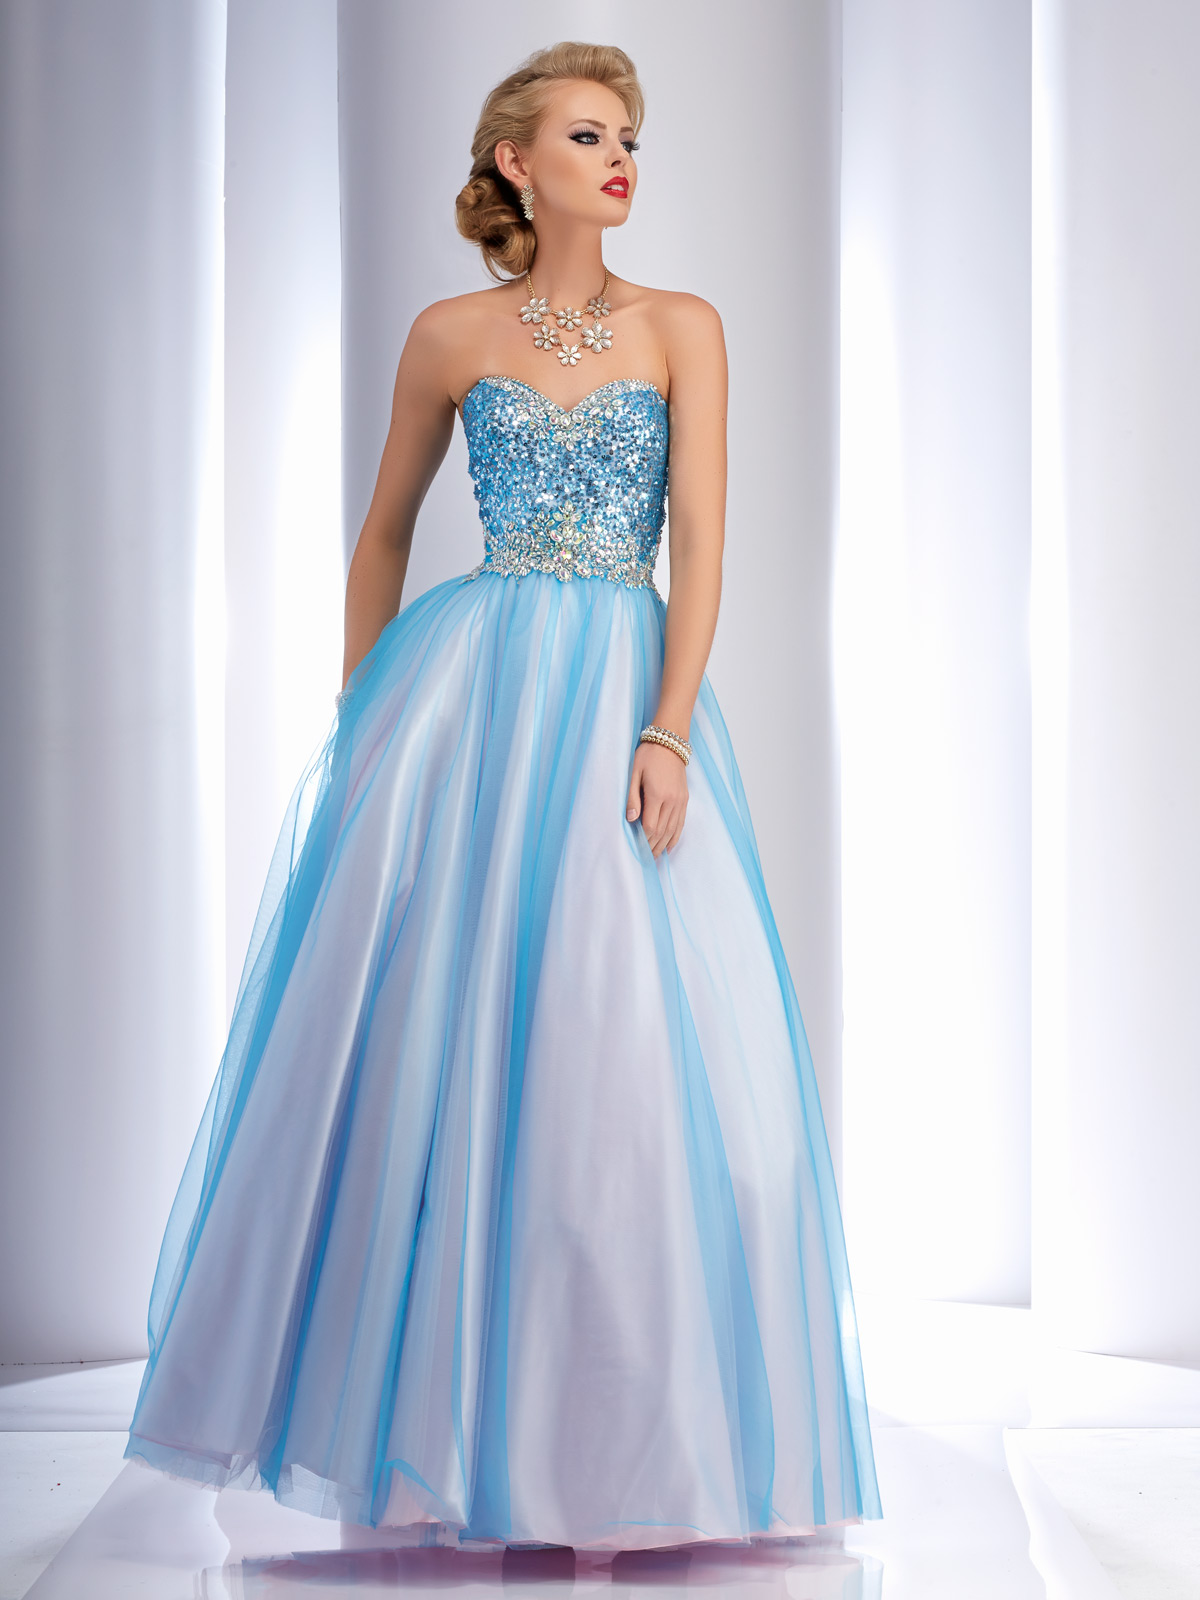 Clarisse 2016 Prom Dress Collection